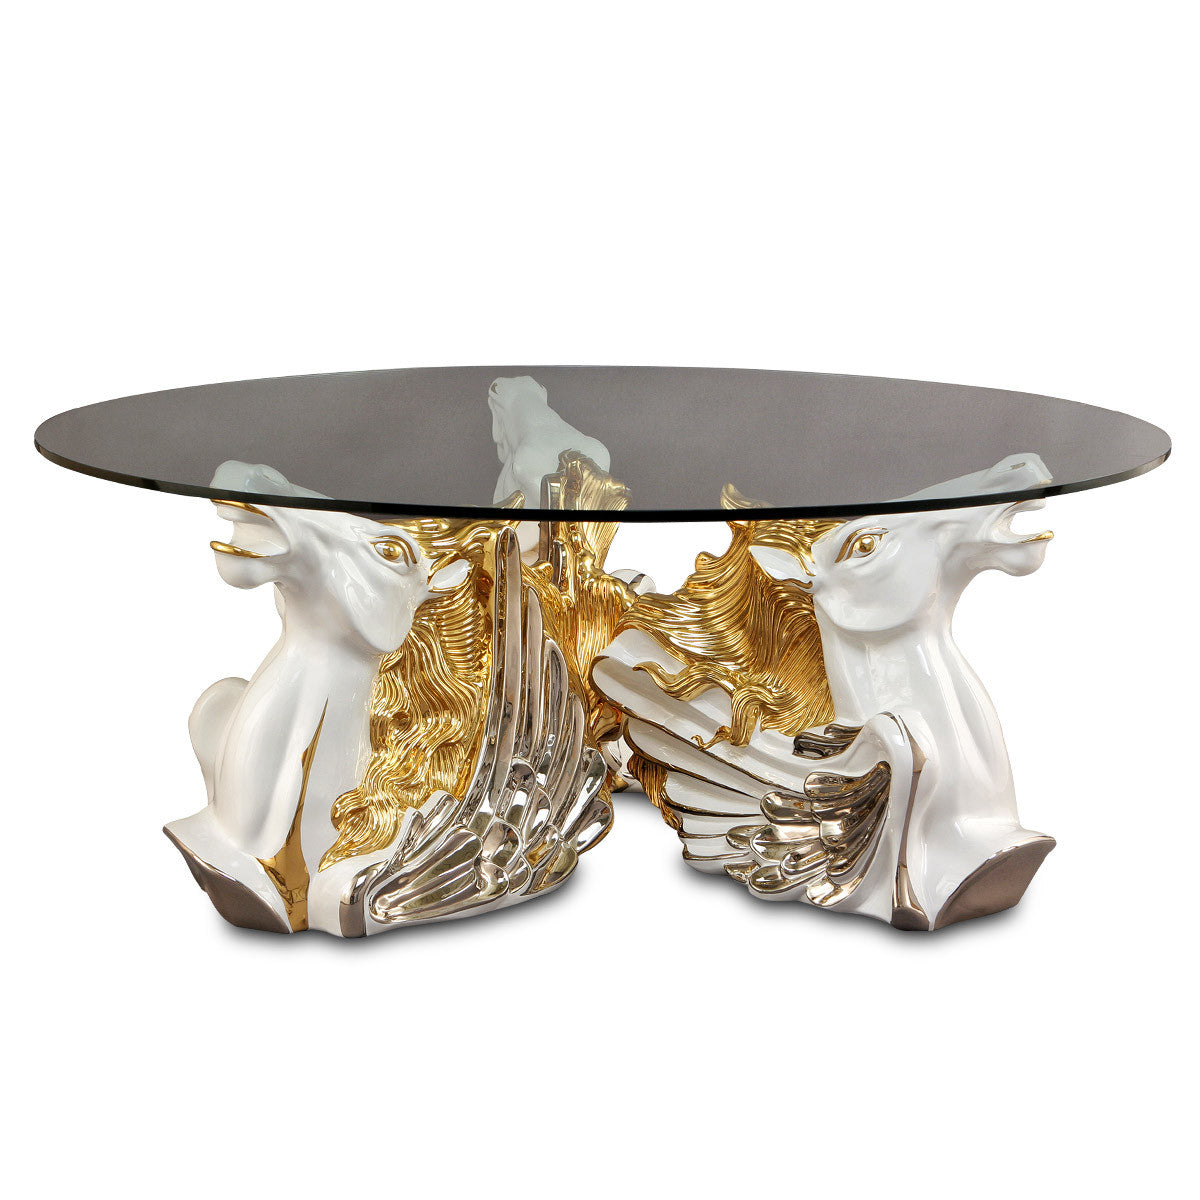 Gryphon Table - Ceramic Porcelain - Home Furniture